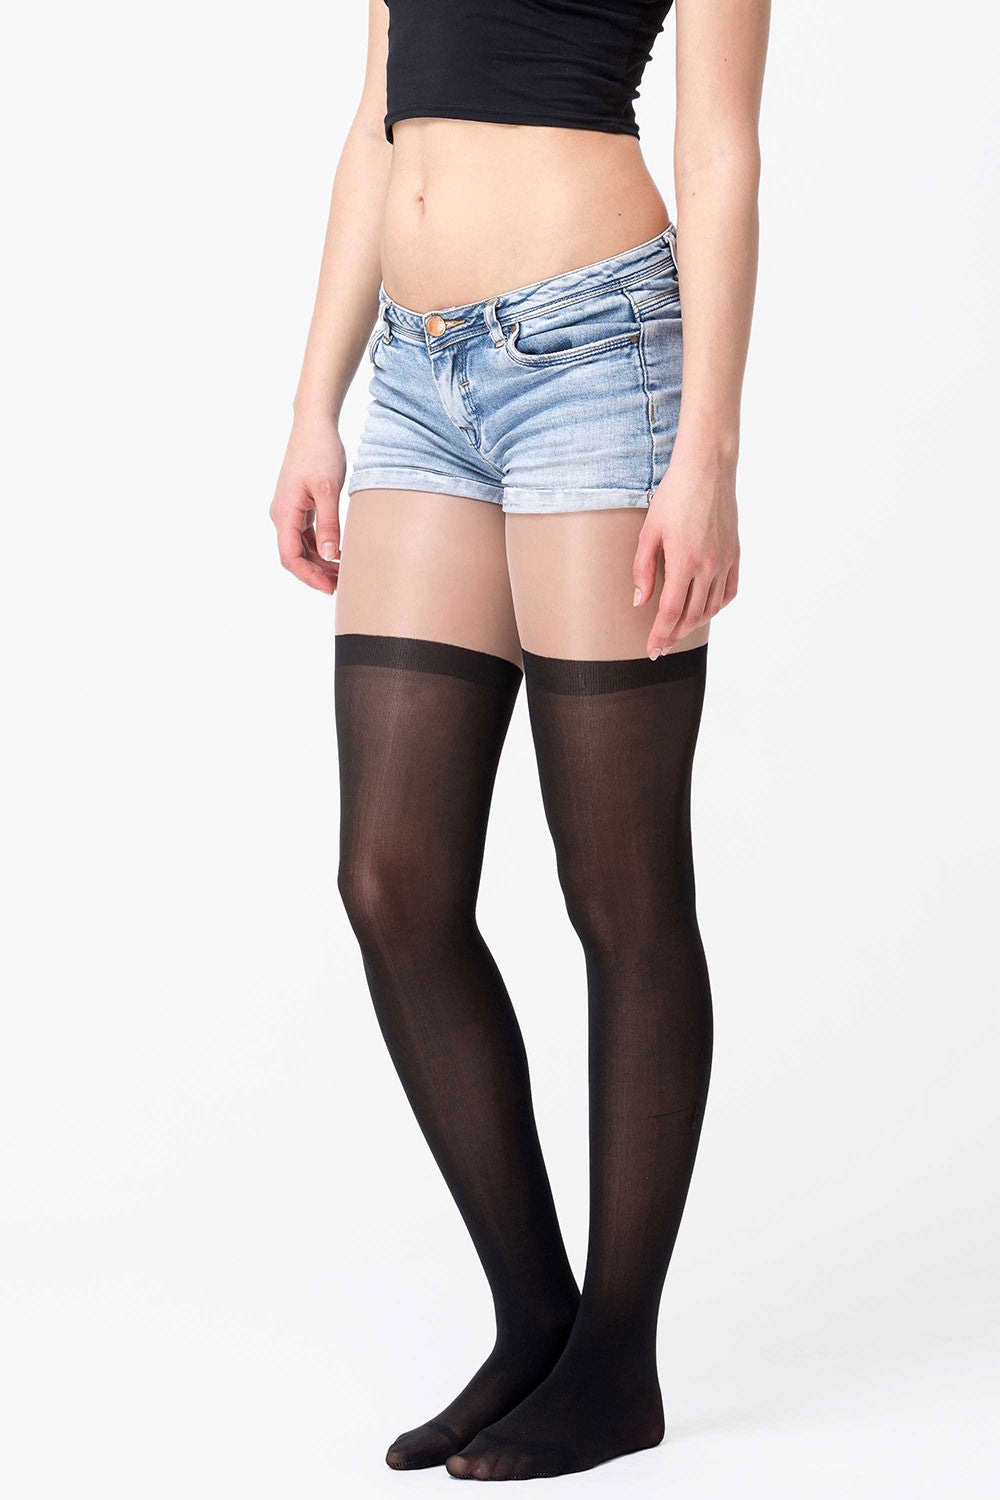 Over The Knee Tights